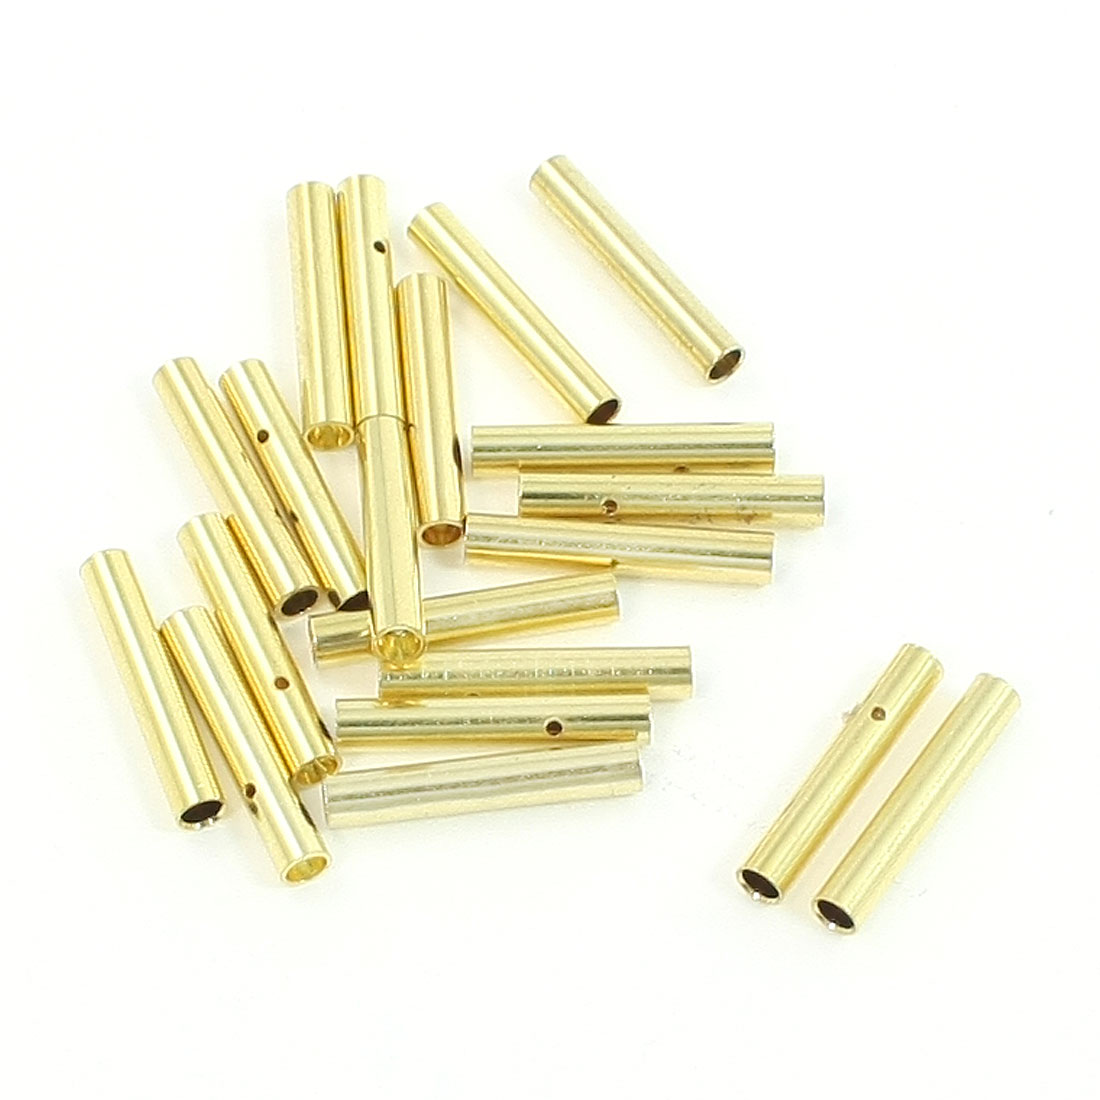 2mm Inside Dia Connector Brushless Motor Banana Adapter 20 Pcs